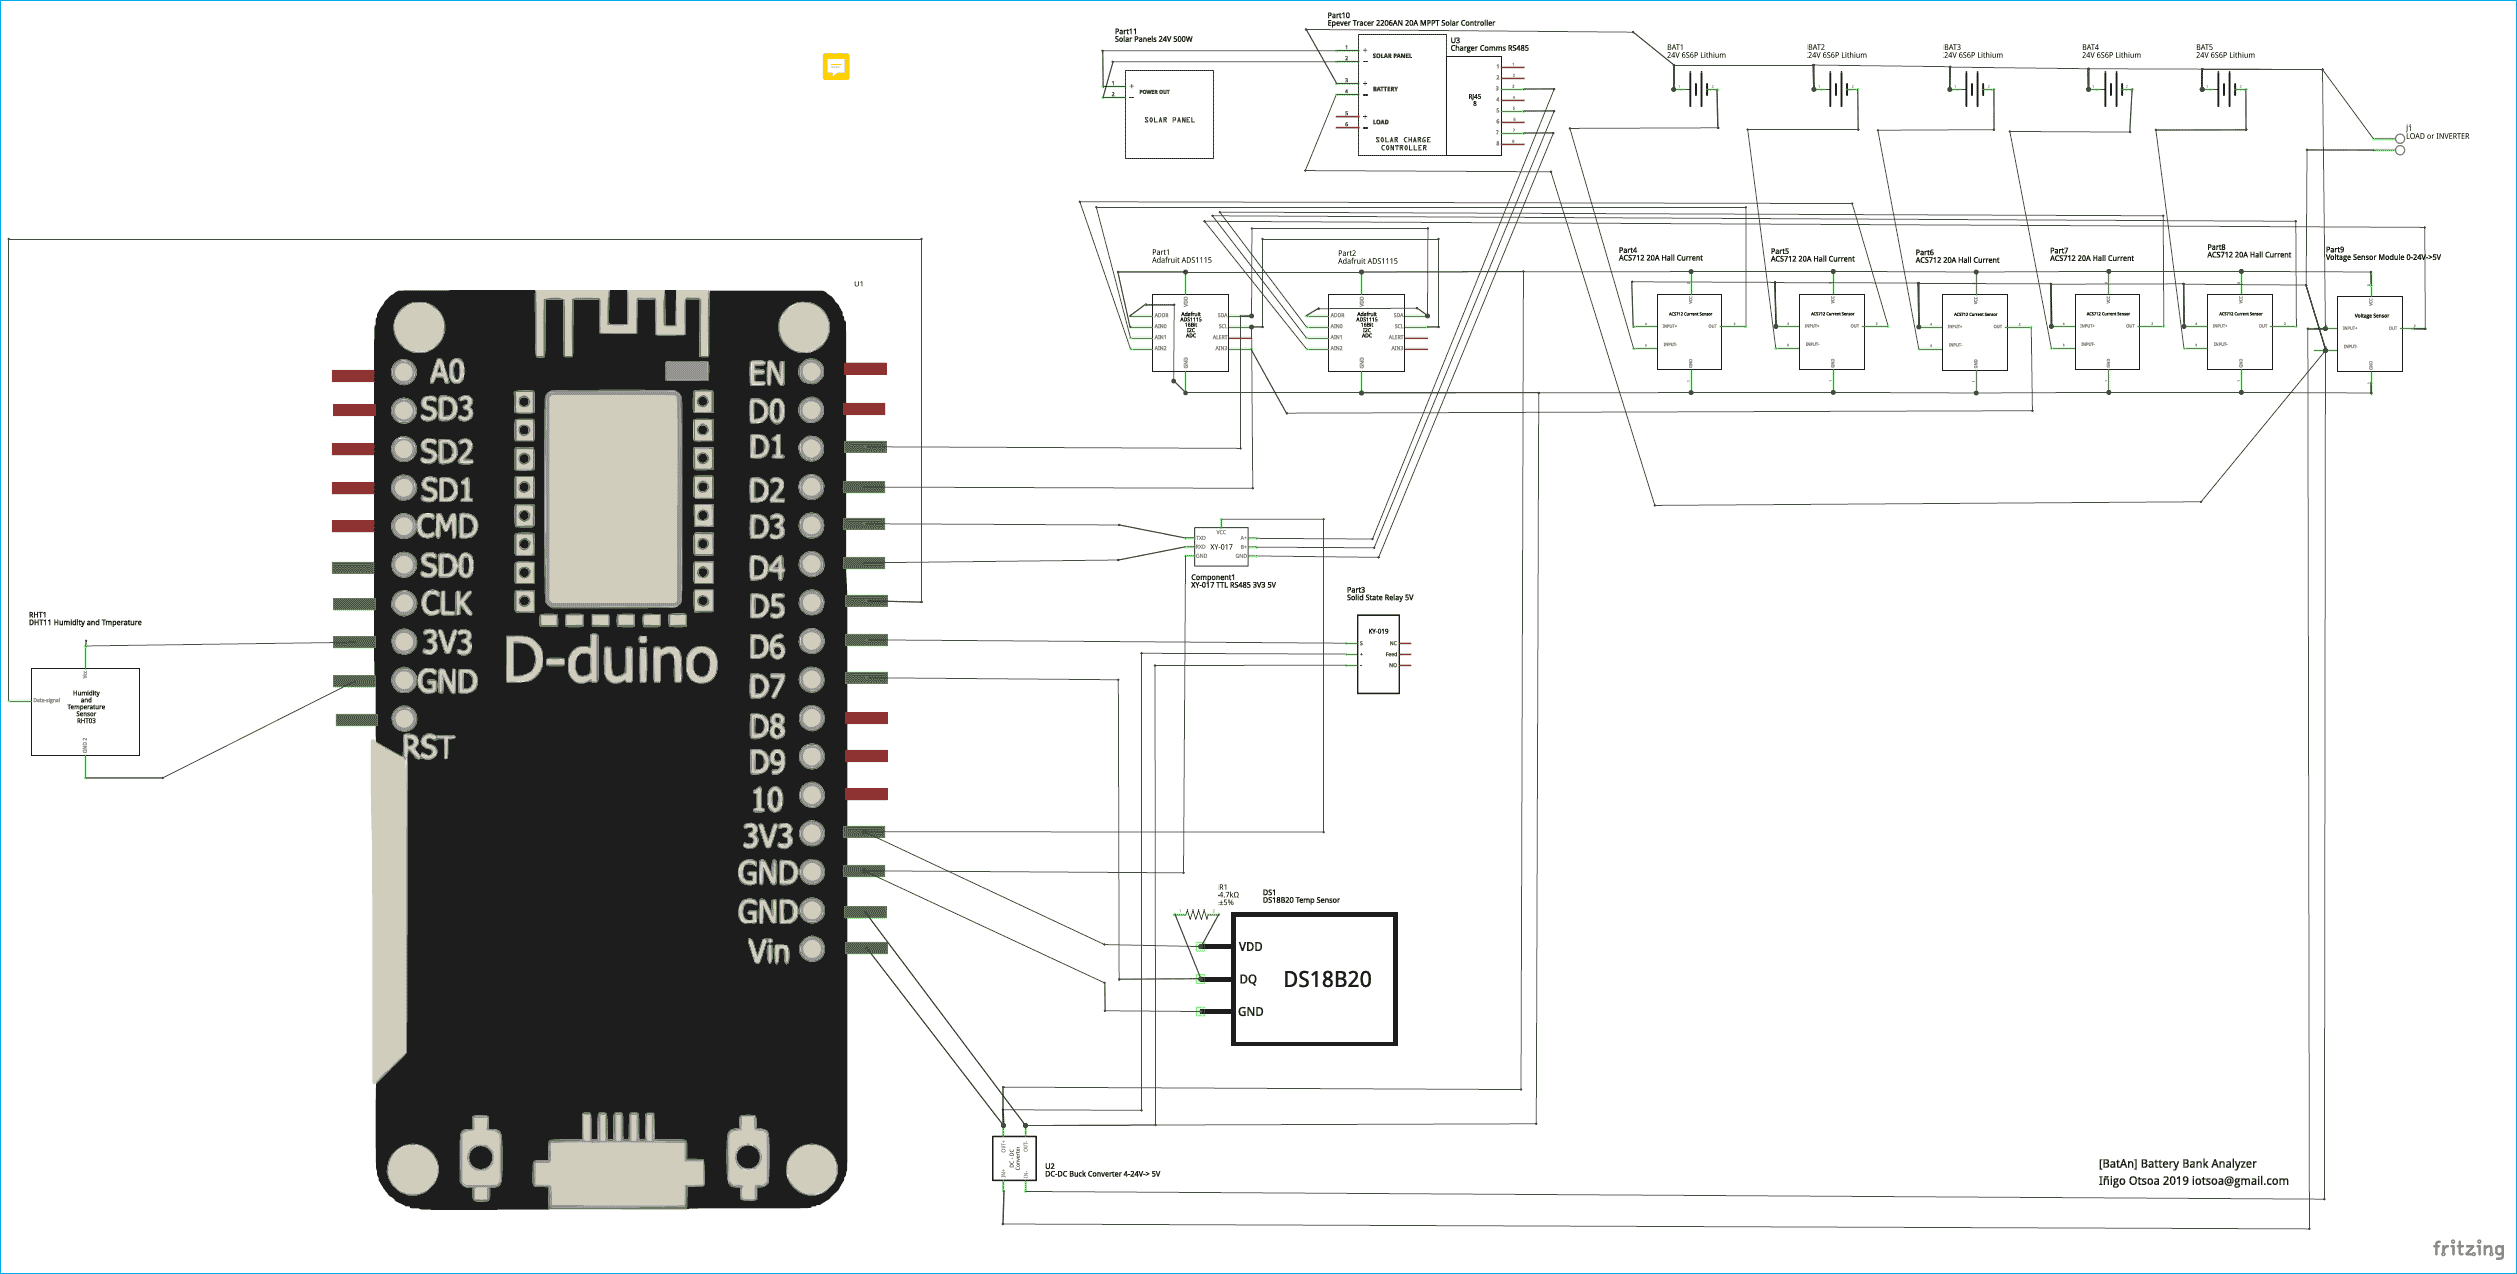 Circuit Diagram of IoT based Lithium Battery Monitoring System using ESP8266